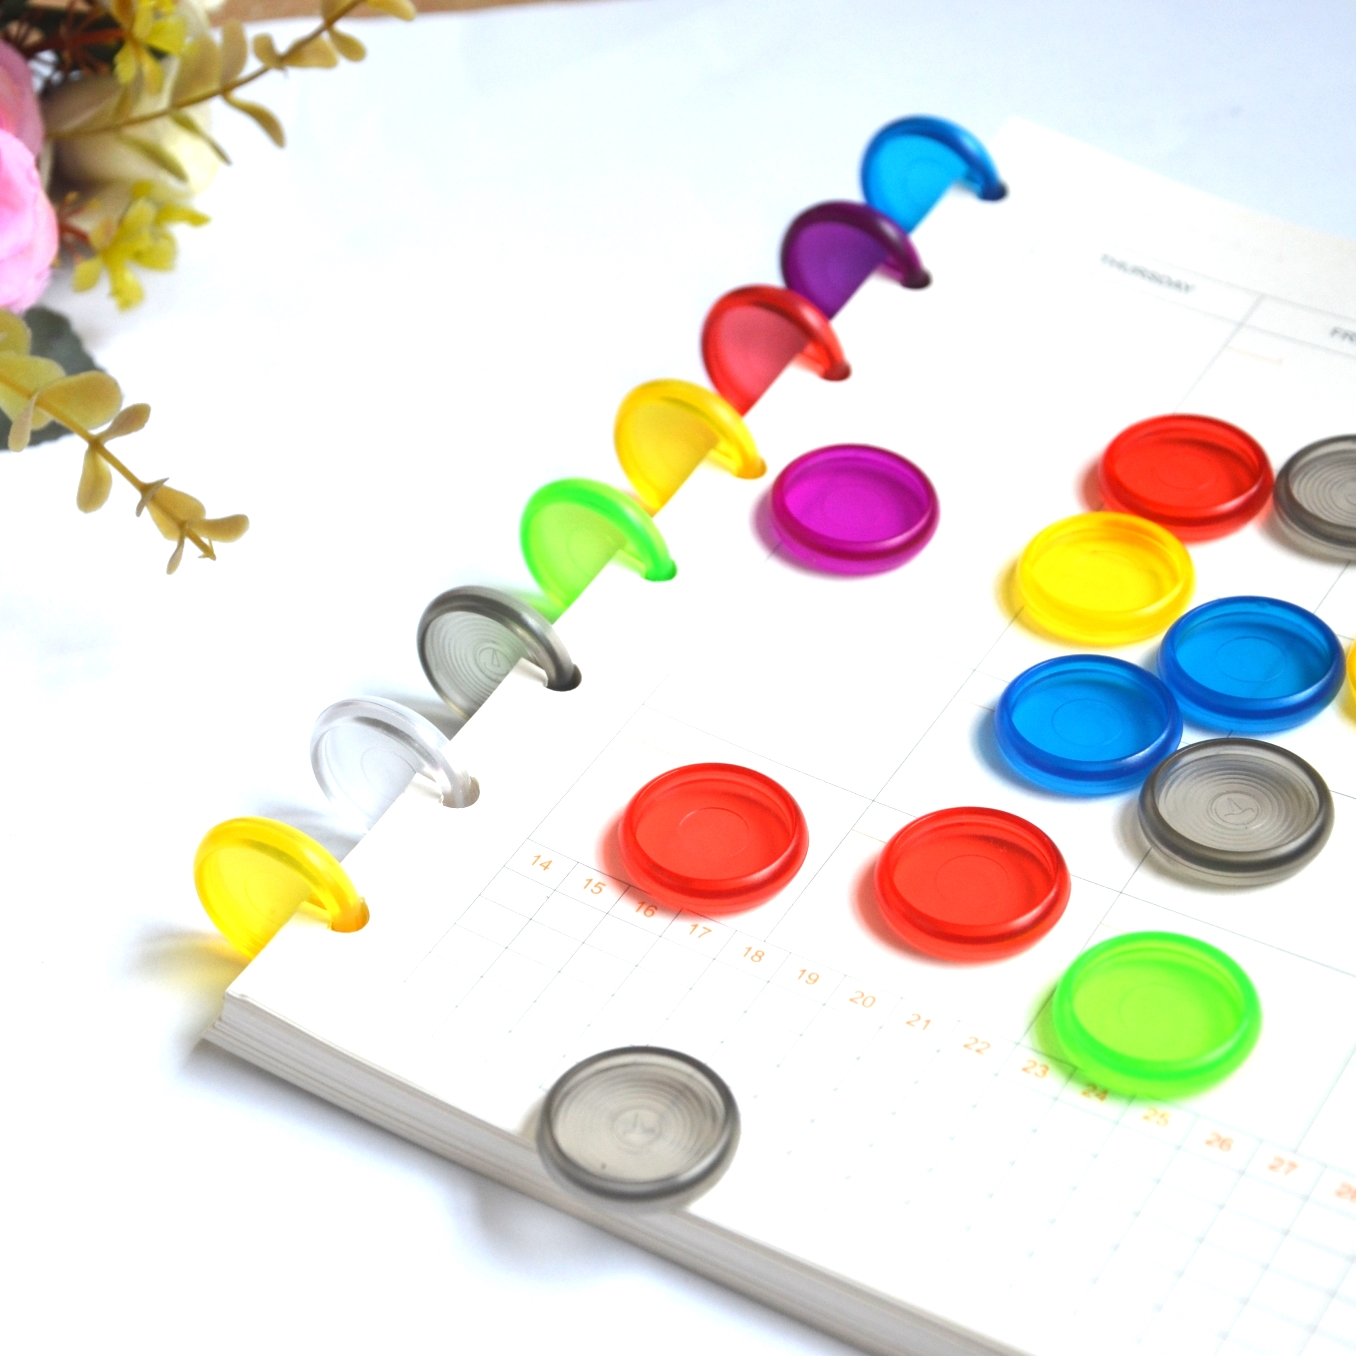 12pcs 24mm Binding Disc Plastic Round Binding Ring Buckle Color Binder Accessories Mushroom Hole Books Discs Binding